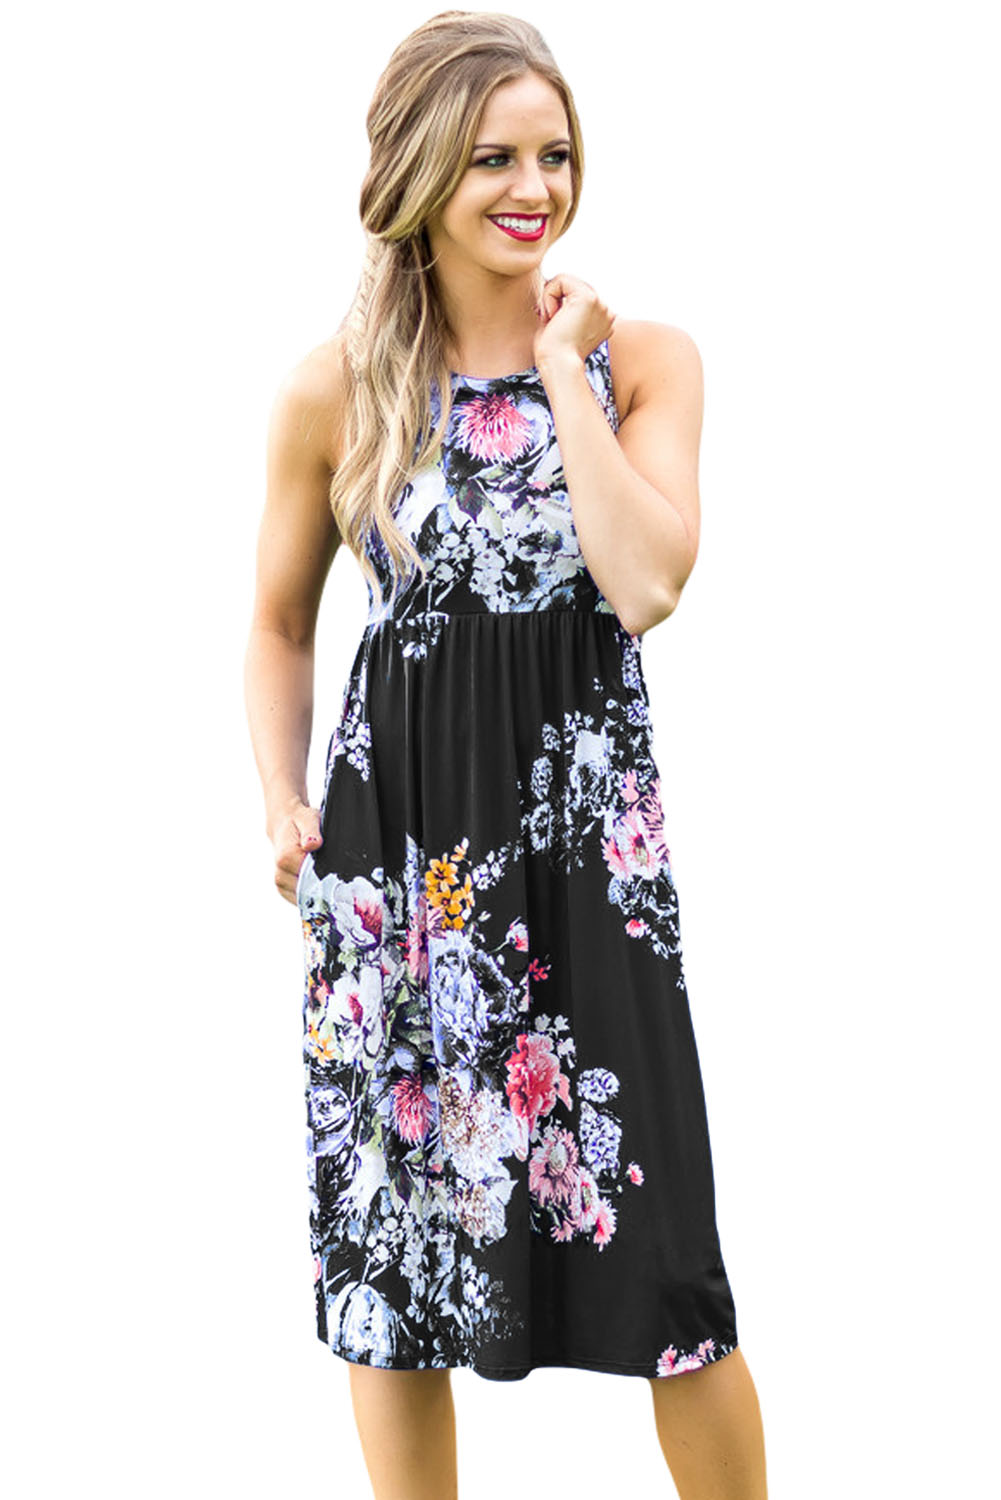 Summer Women Midi Dress Women Fall in Love with Floral Print Boho Knee Length Ladies Casual Dresses Robe Longue Femme V616120